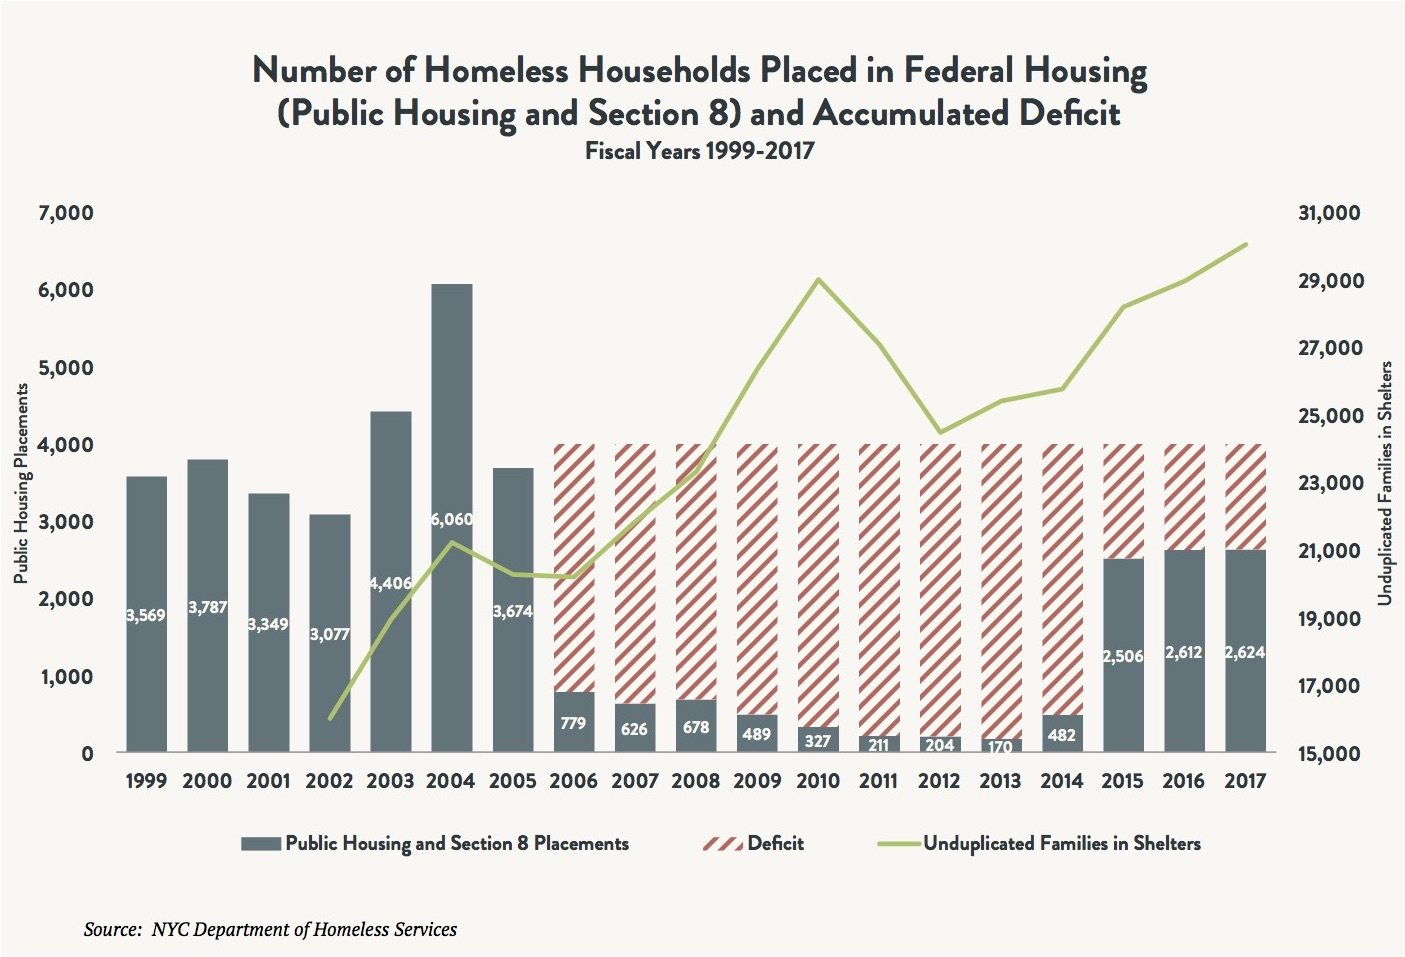 A bar and line graph comparing the number of homeless households placed in federal housing (Public Housing and Section 8) and the accumulated deficit between fiscal years 1999 and 2017. A line is used to indicate the number of unduplicated families in shelters vs. these two figures.